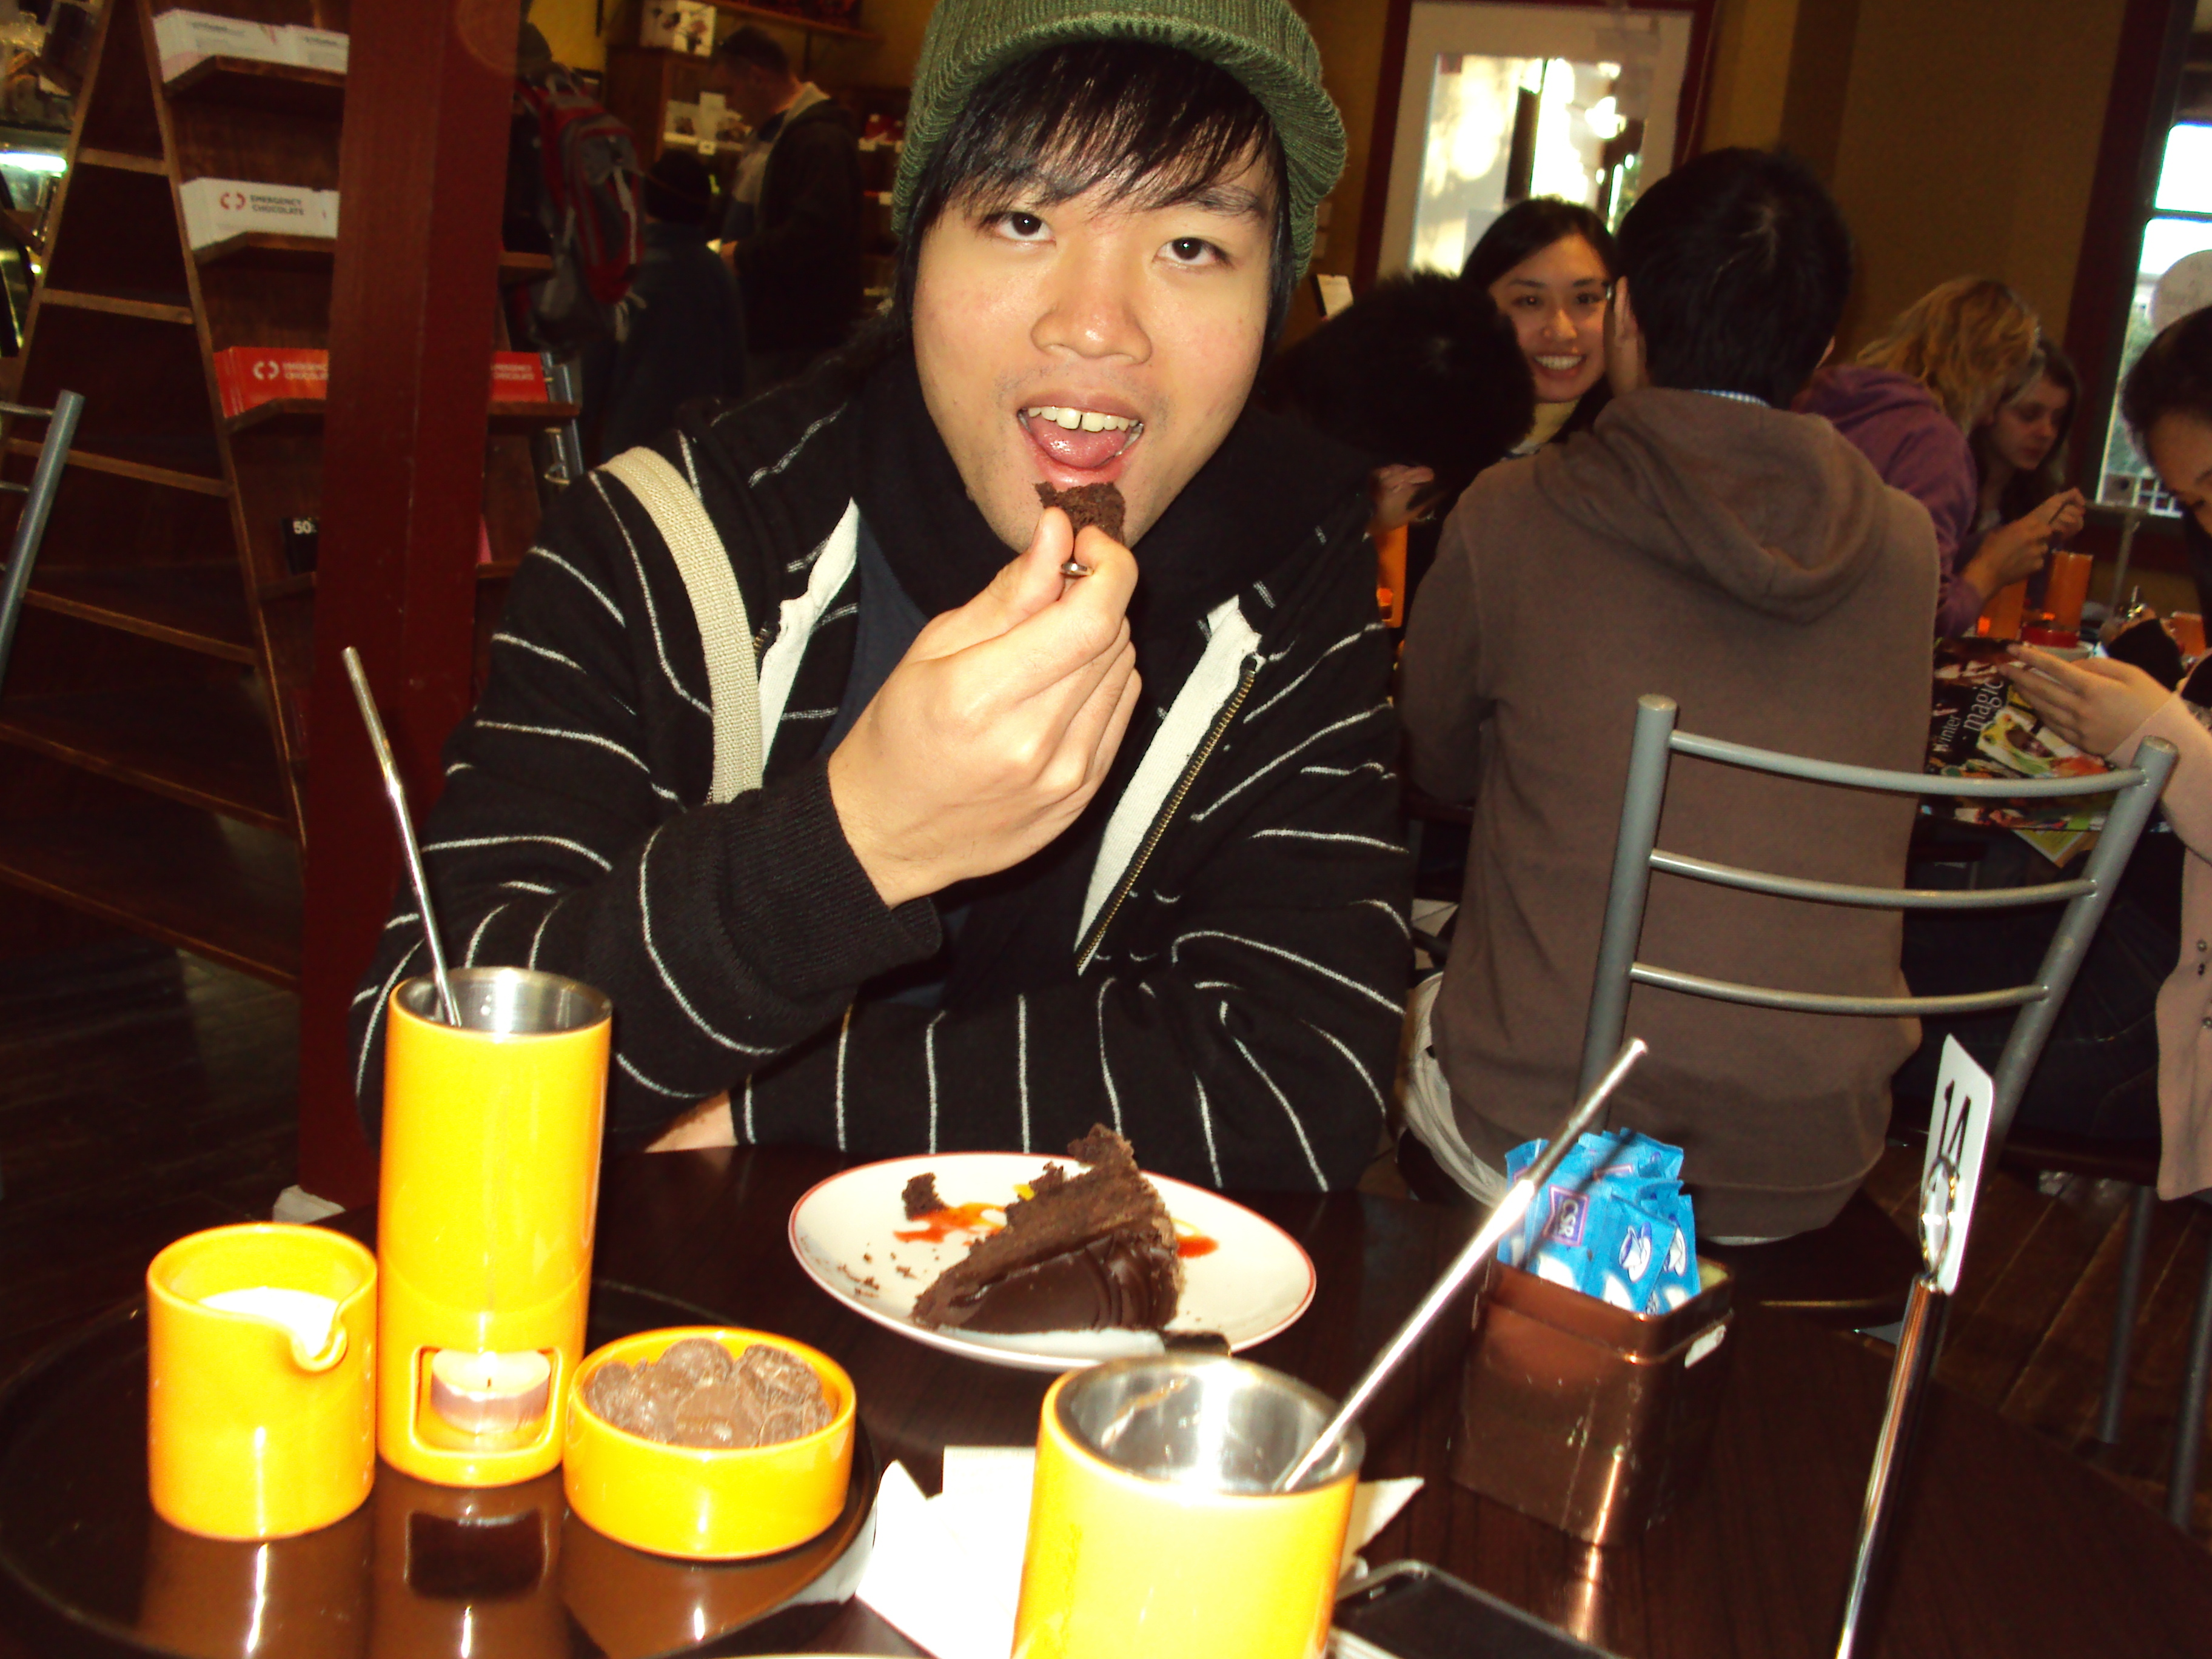 Me eating my Mud Forest Cake